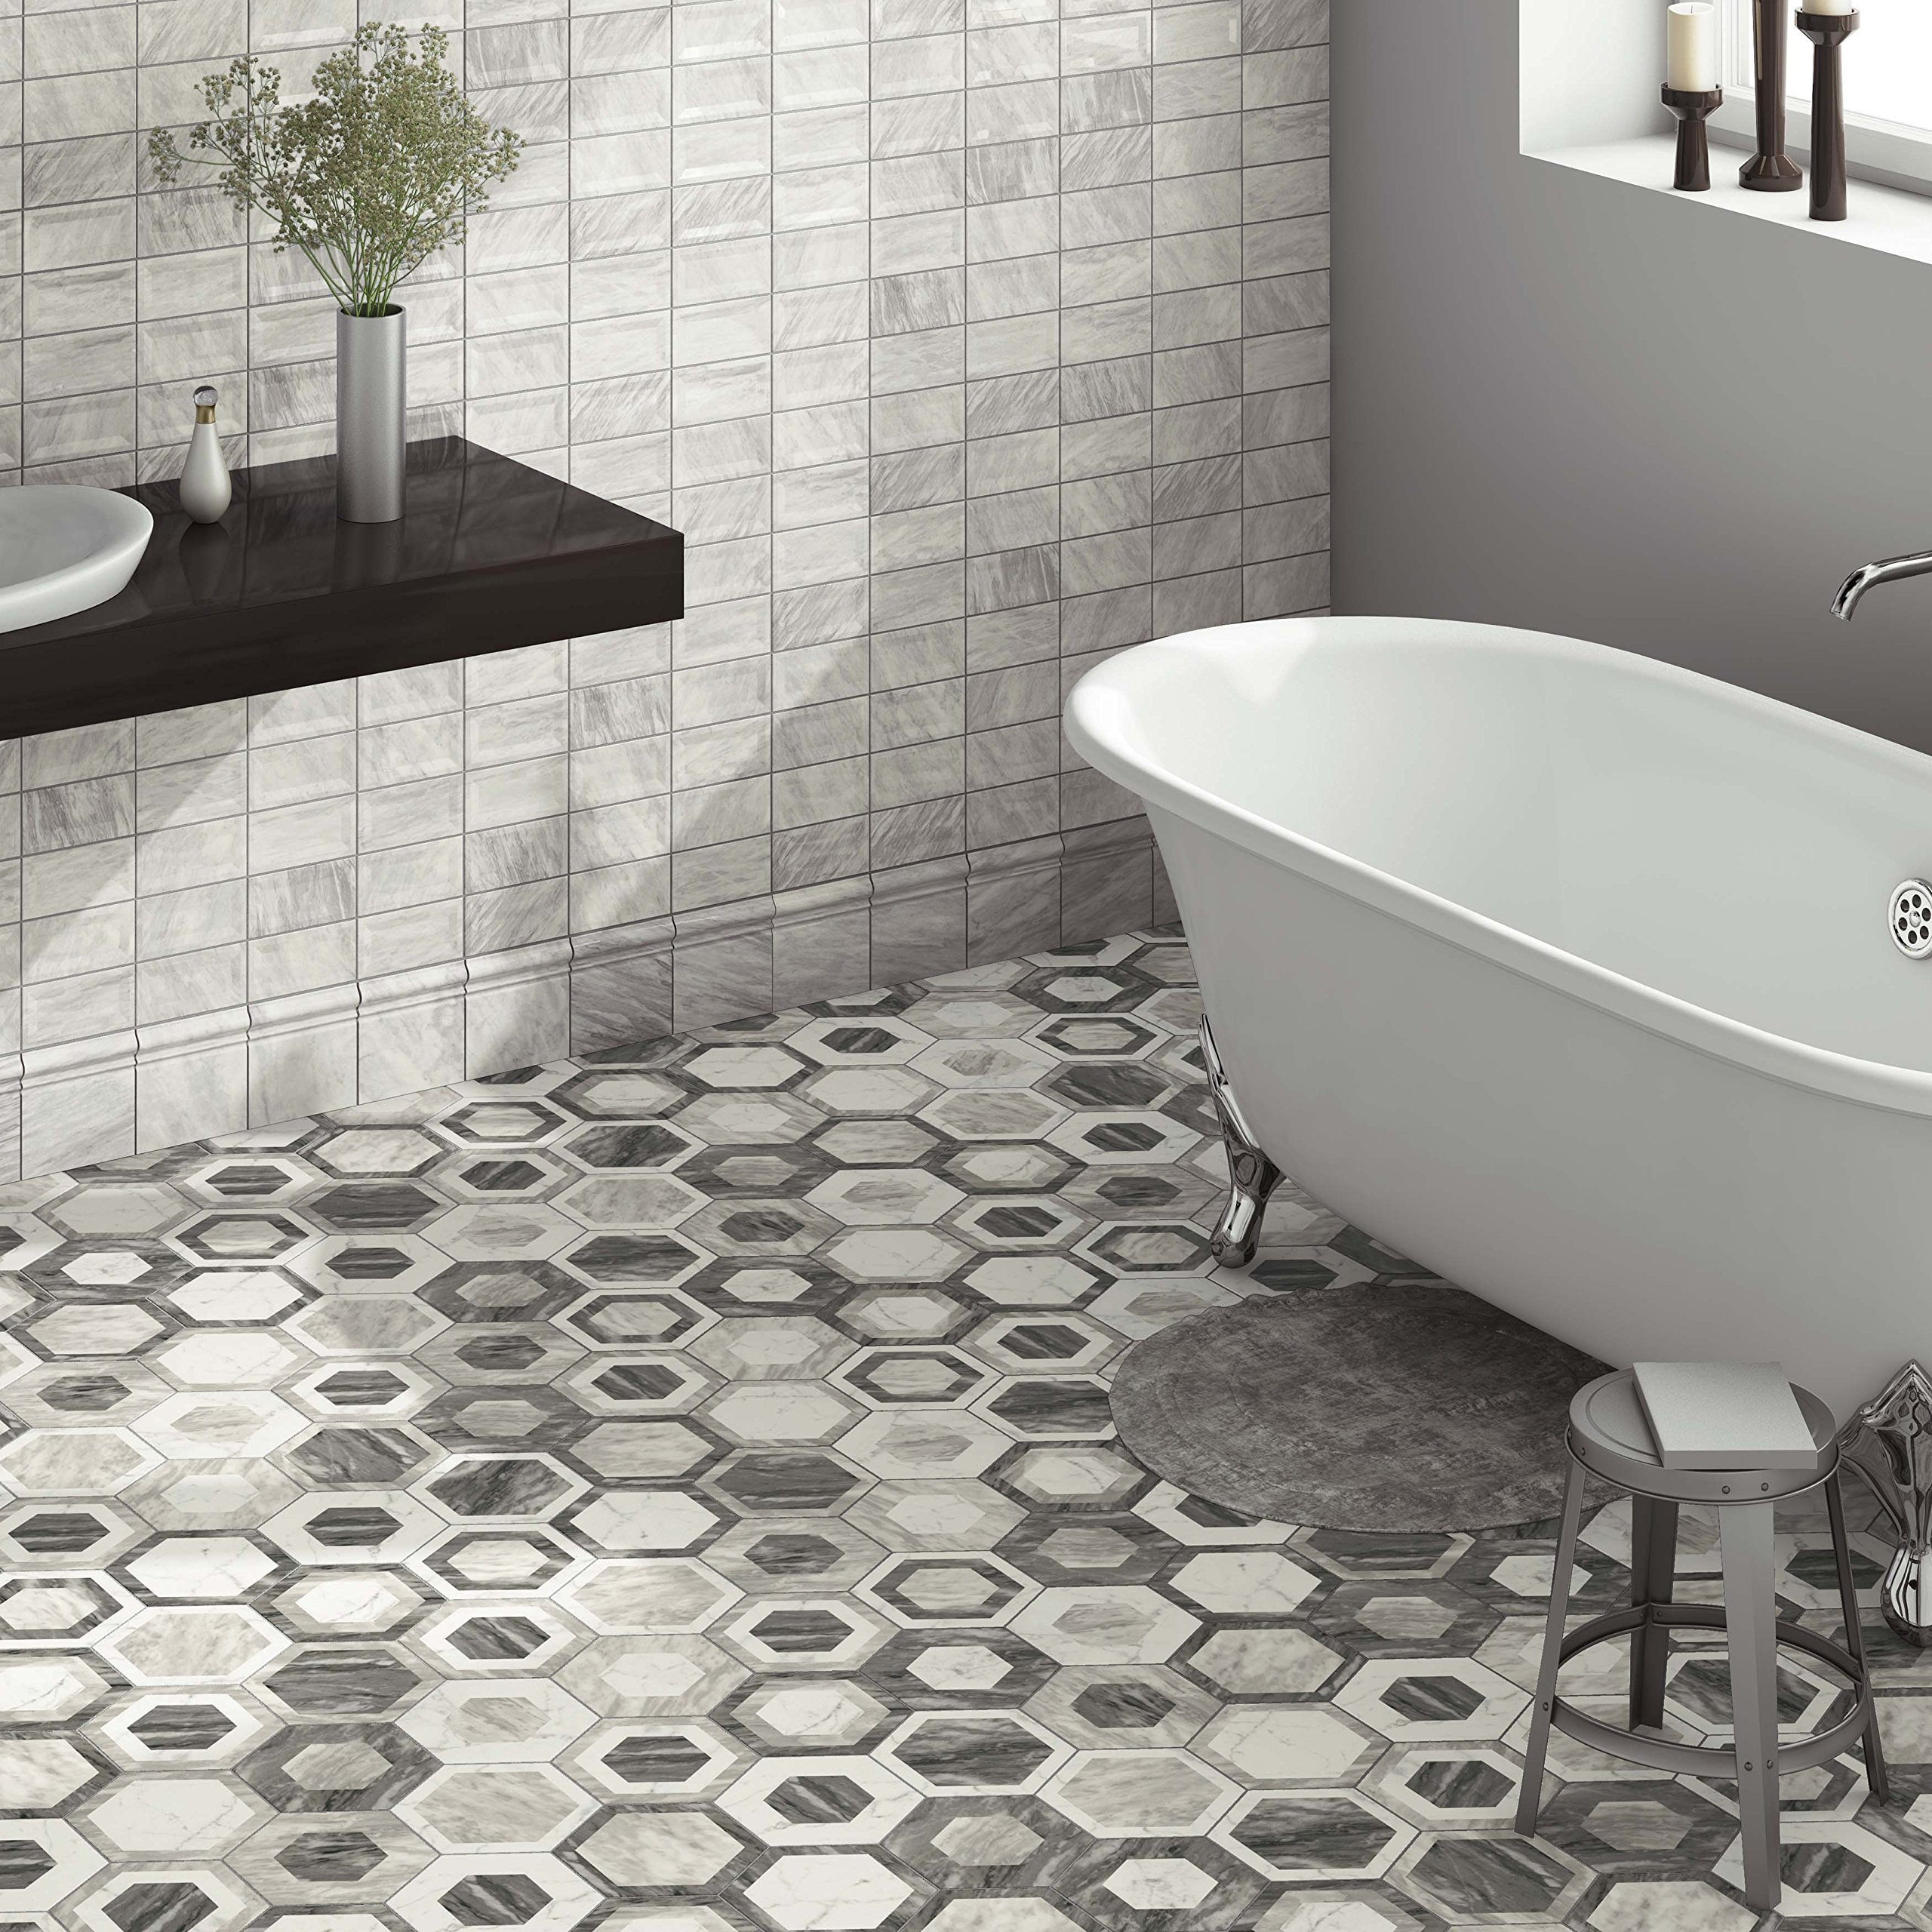 SomerTile FEQ8BXG Murmur Bardiglio Hexagon Porcelain Floor and Wall Tile, 7'' x 8'', Geo by SOMERTILE (Image #10)